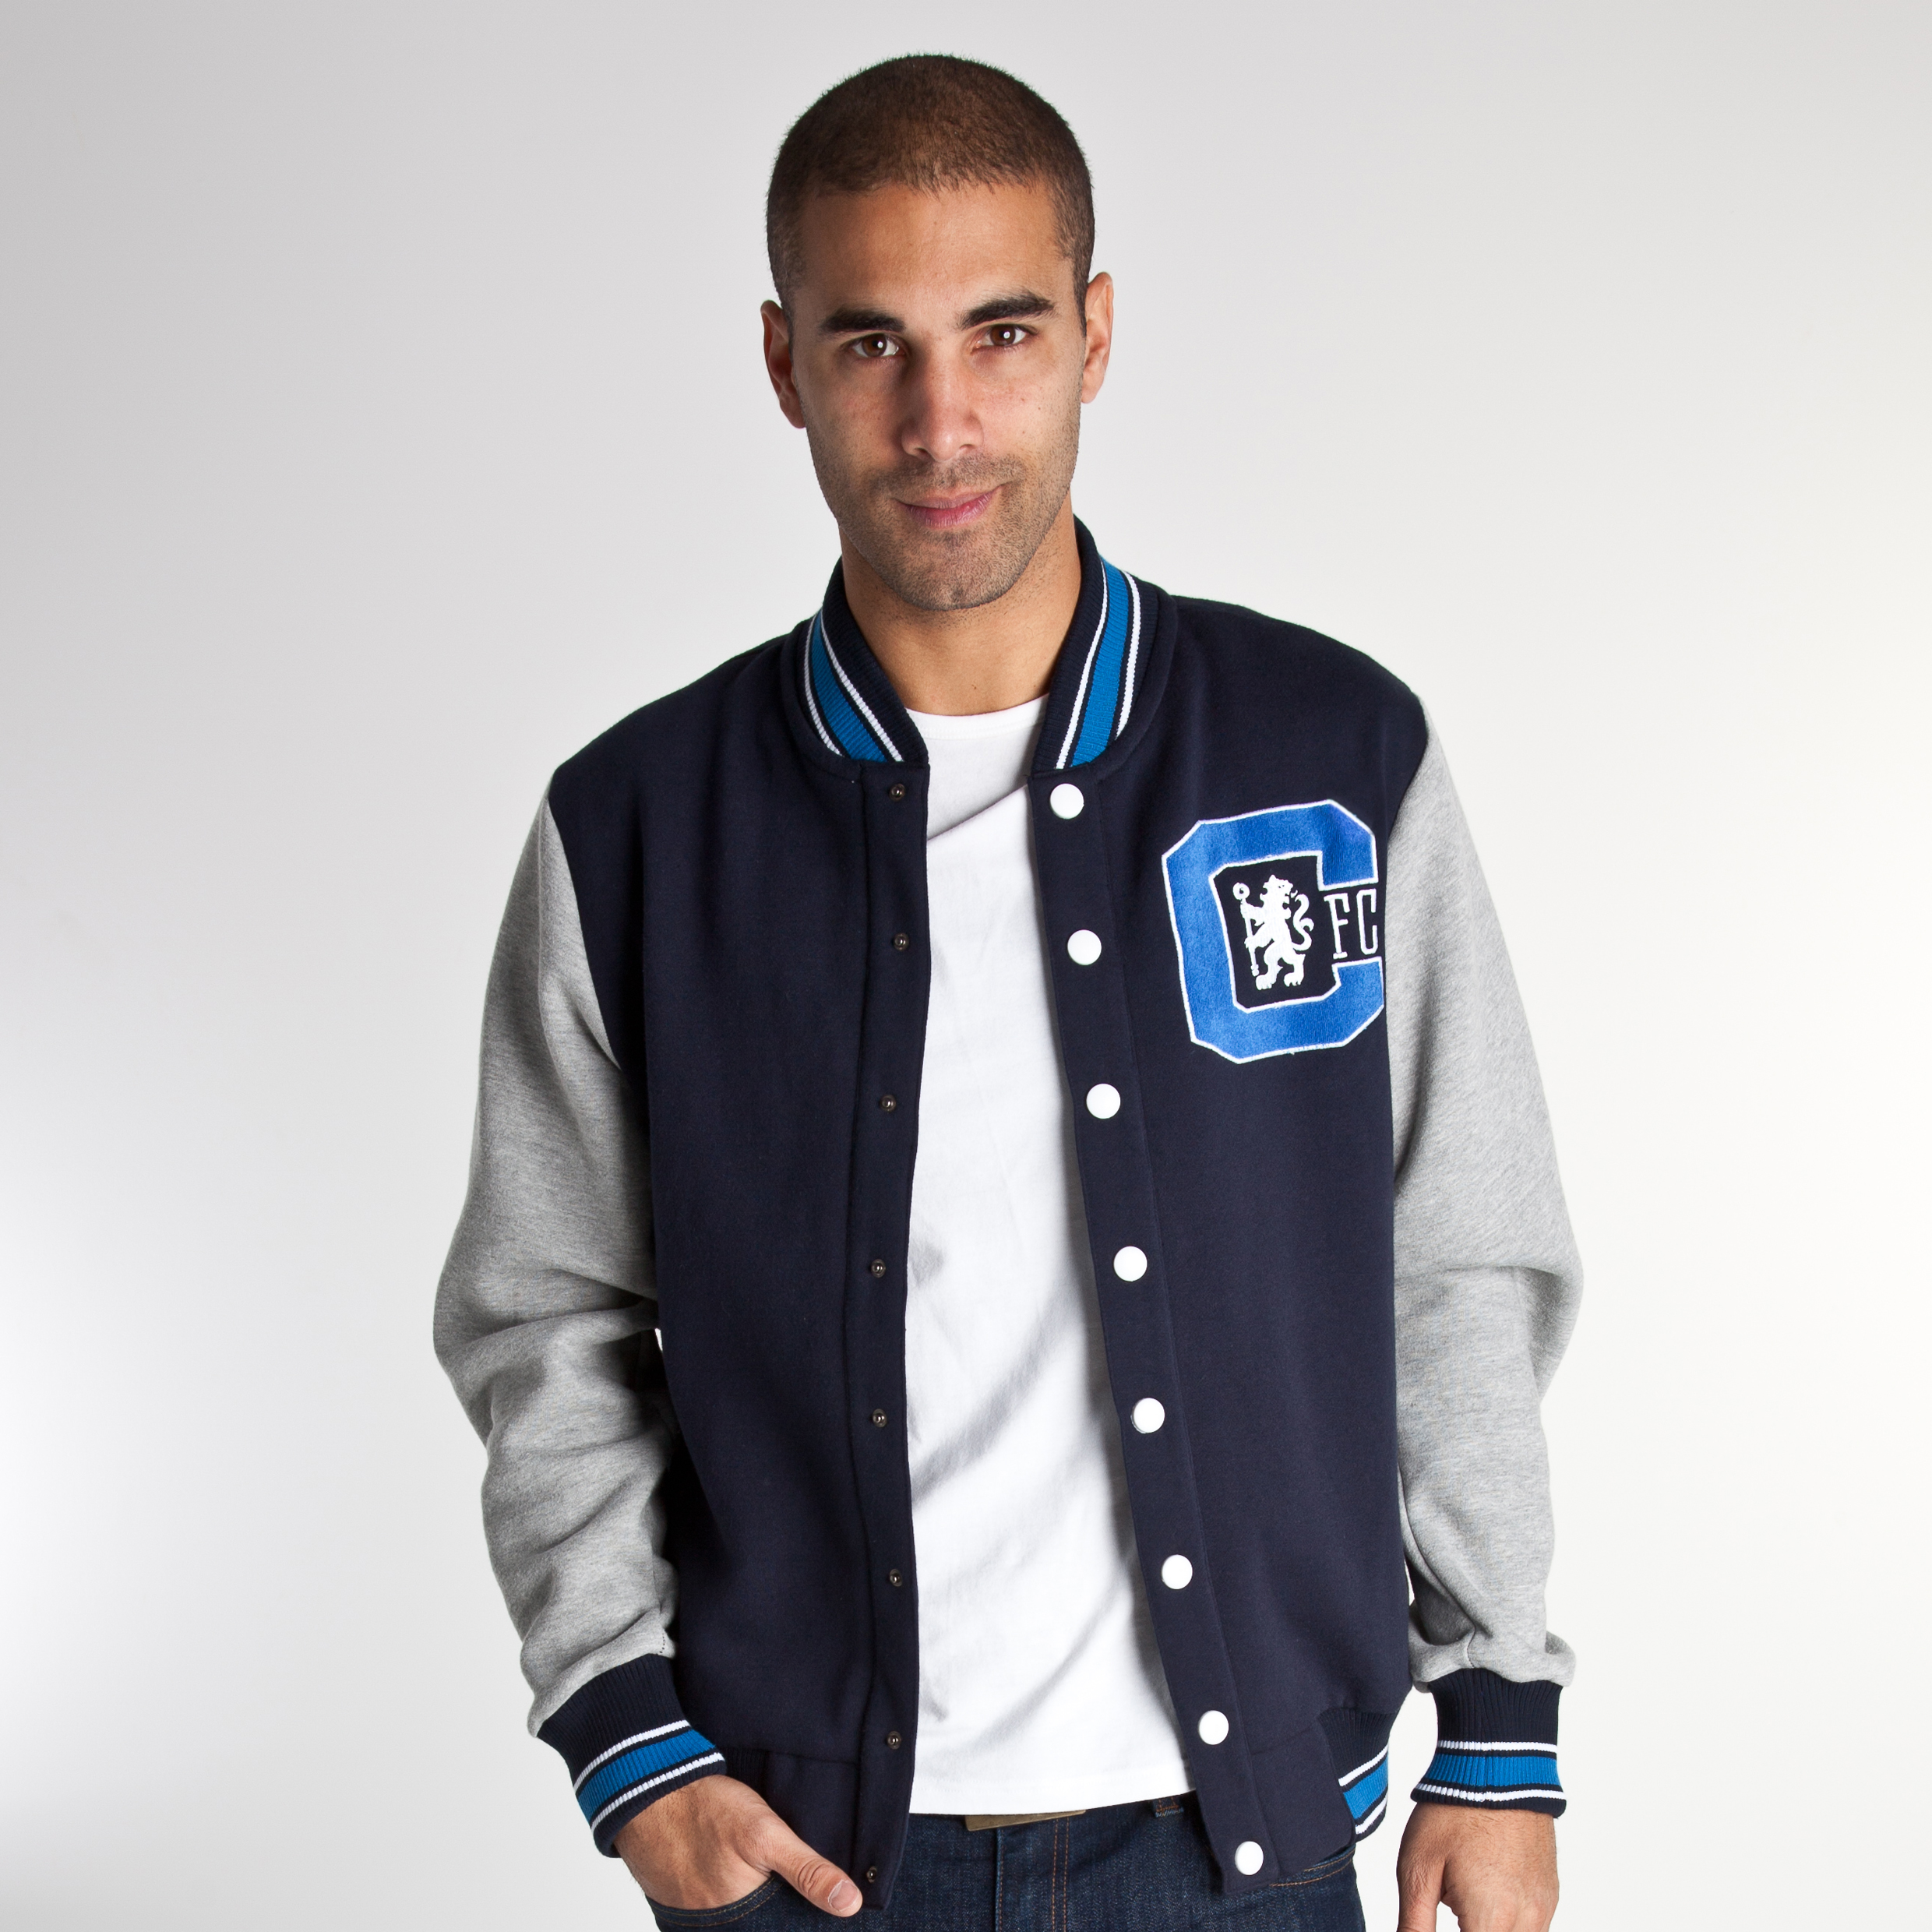 Chelsea 1905 Baseball Jacket - Navy/Light Grey - Mens